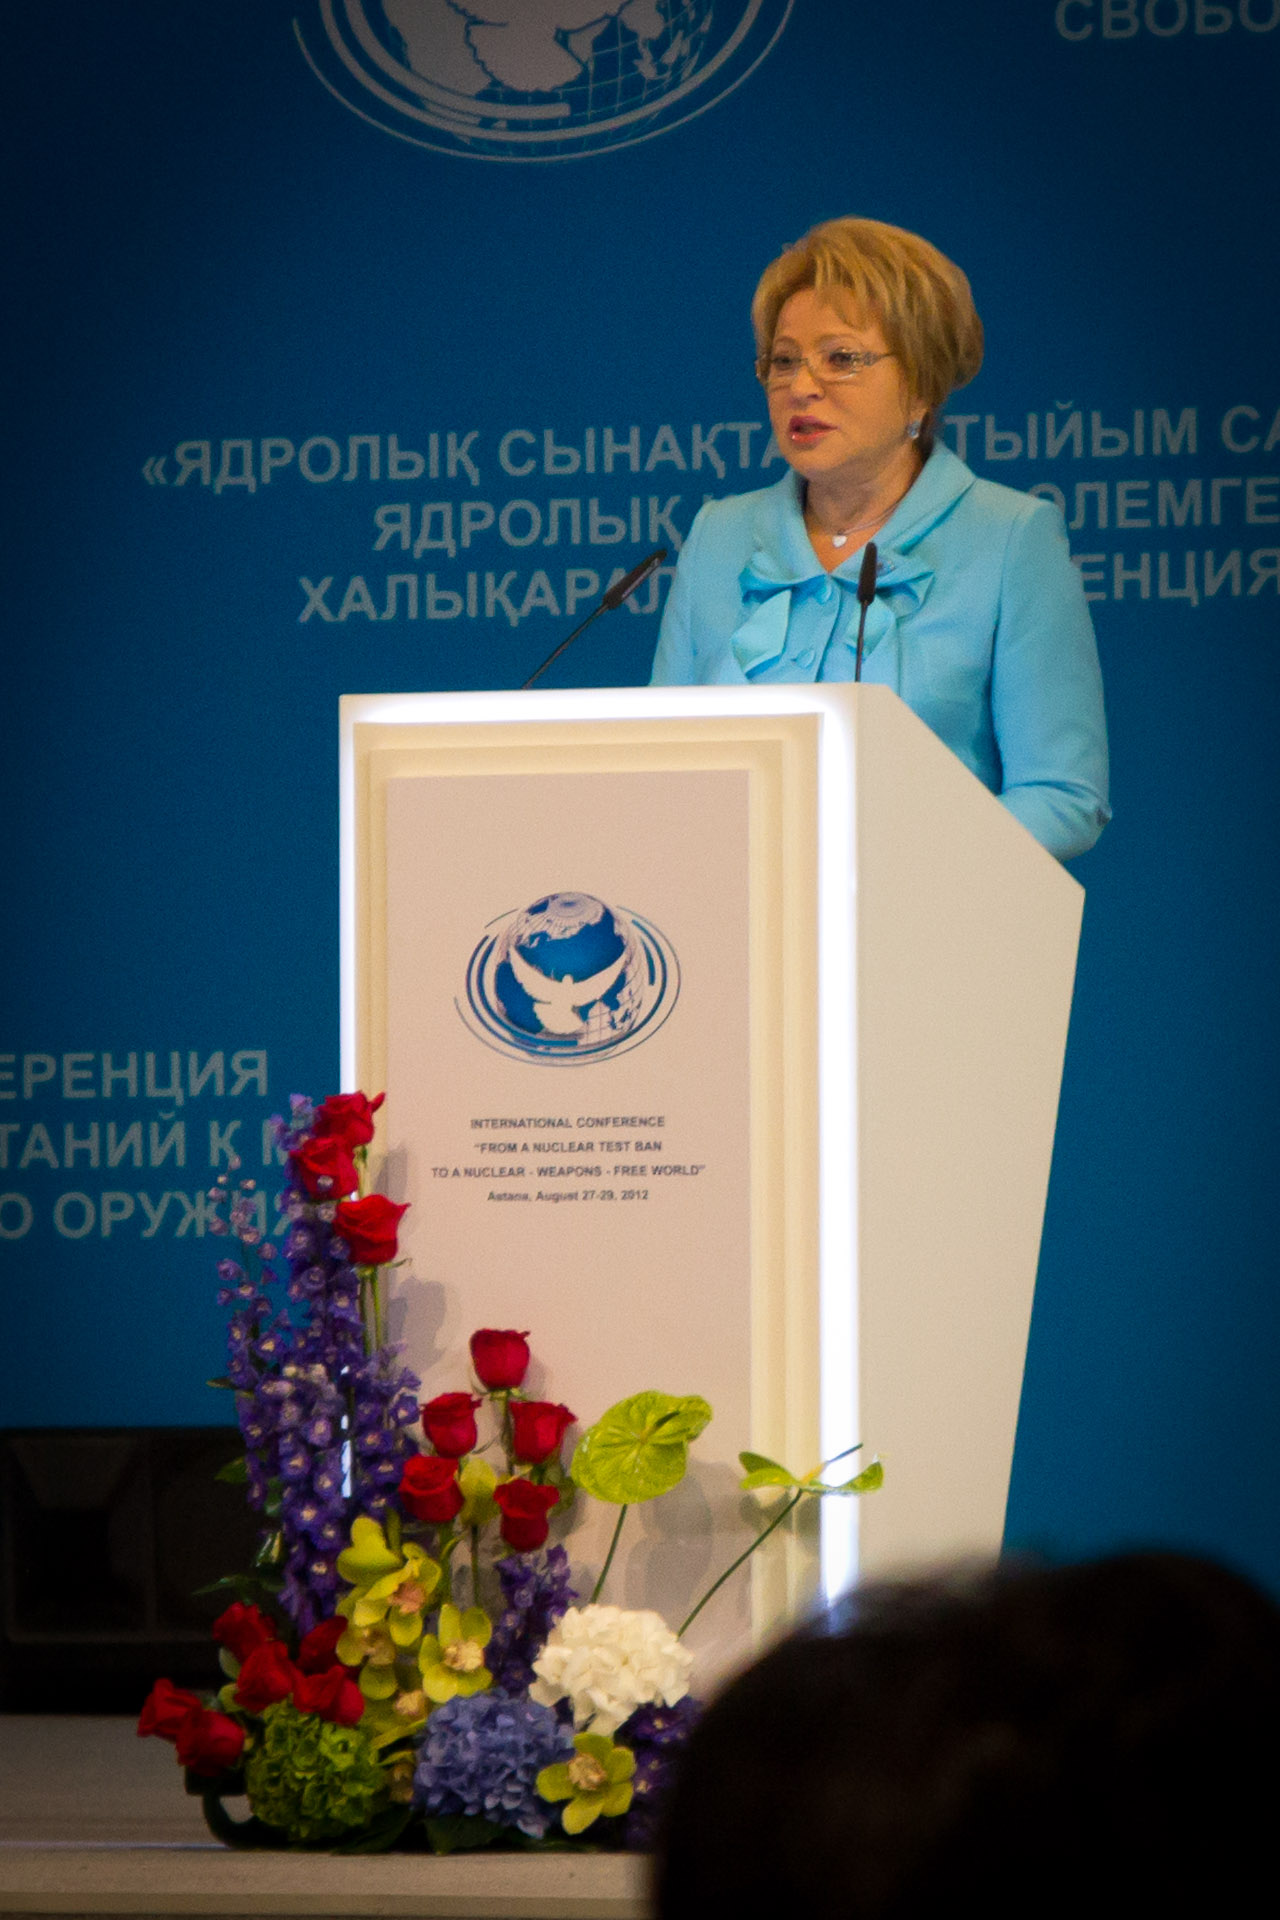 Valentina Matvienko, Chairperson of the Council of the Federation of the Federal Assembly of the Russian Federation